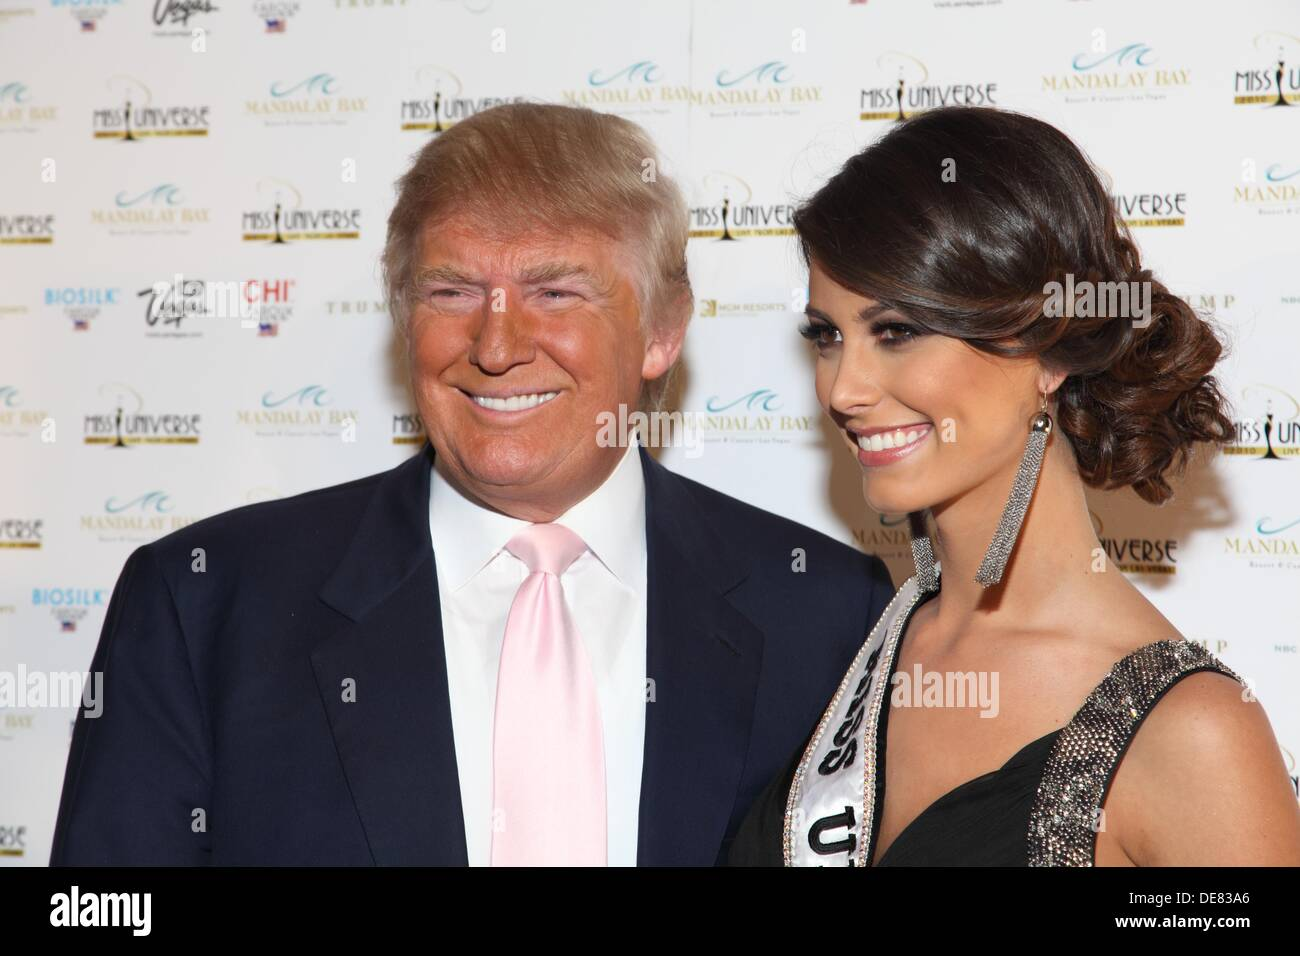 The American tycoon Donald Trump and Miss Universe 2009, Venezuelan Stefania Fernandez on the red carpet Miss Universe 2010 Las - Stock Image